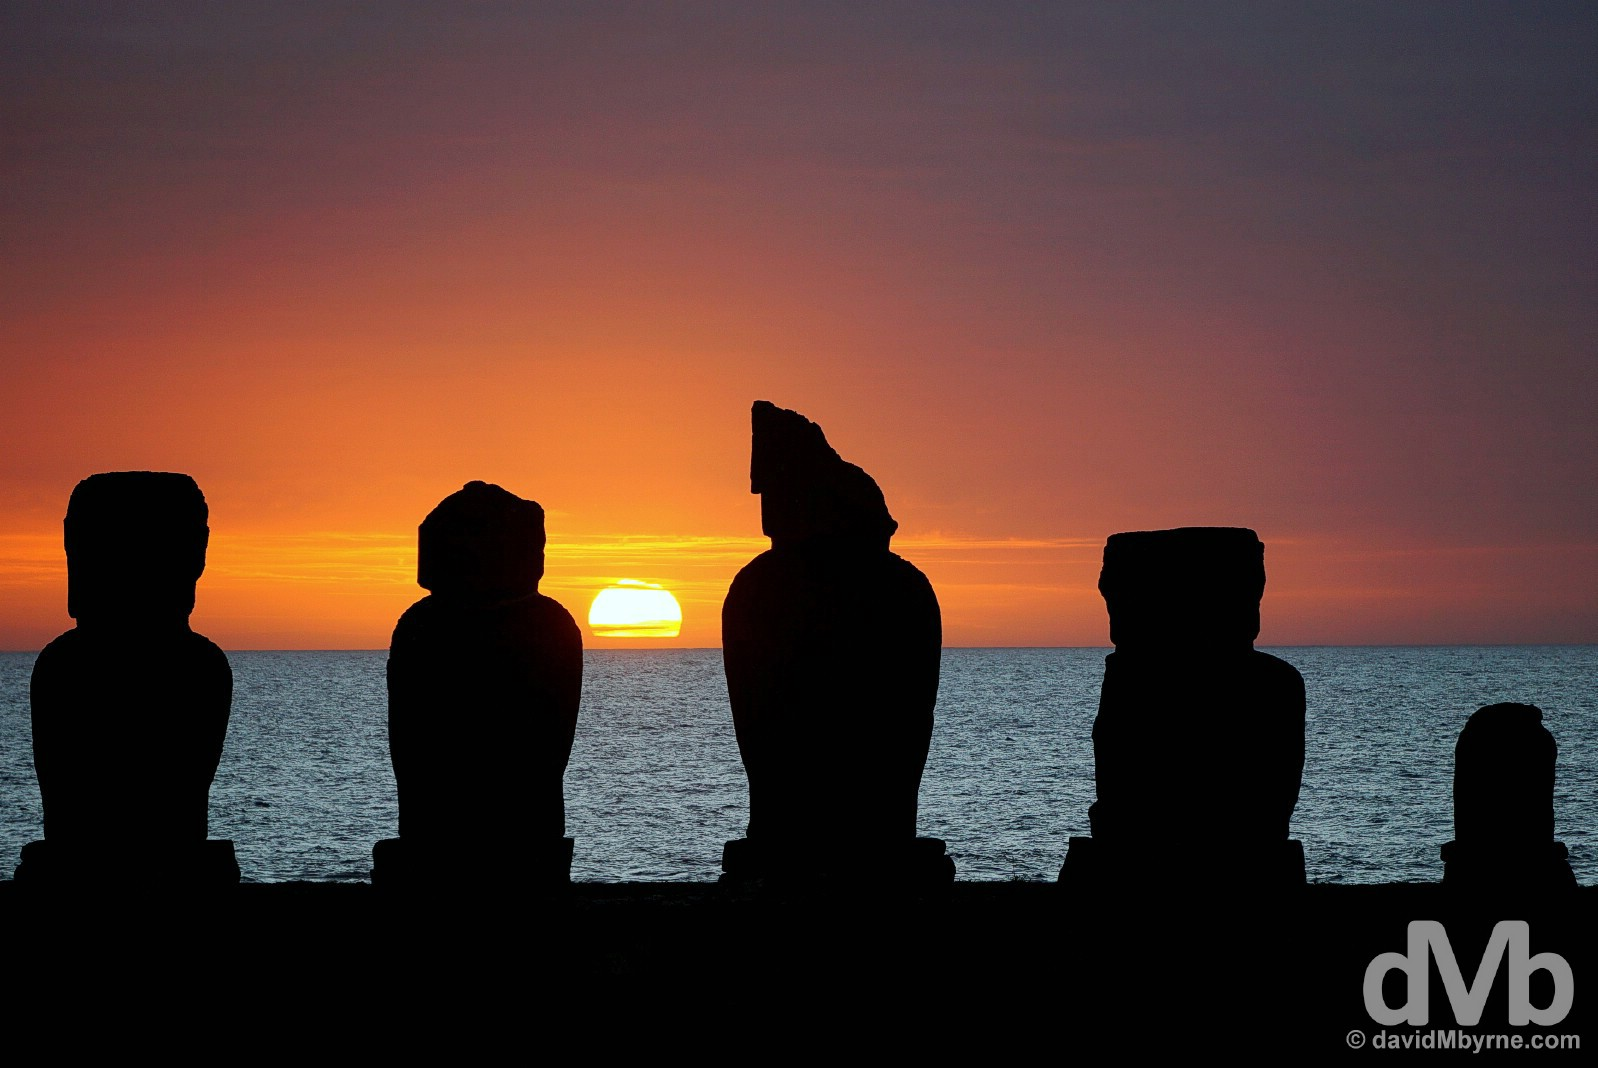 Sunset at Tahai on Easter Island, Chile. September 28, 2015.